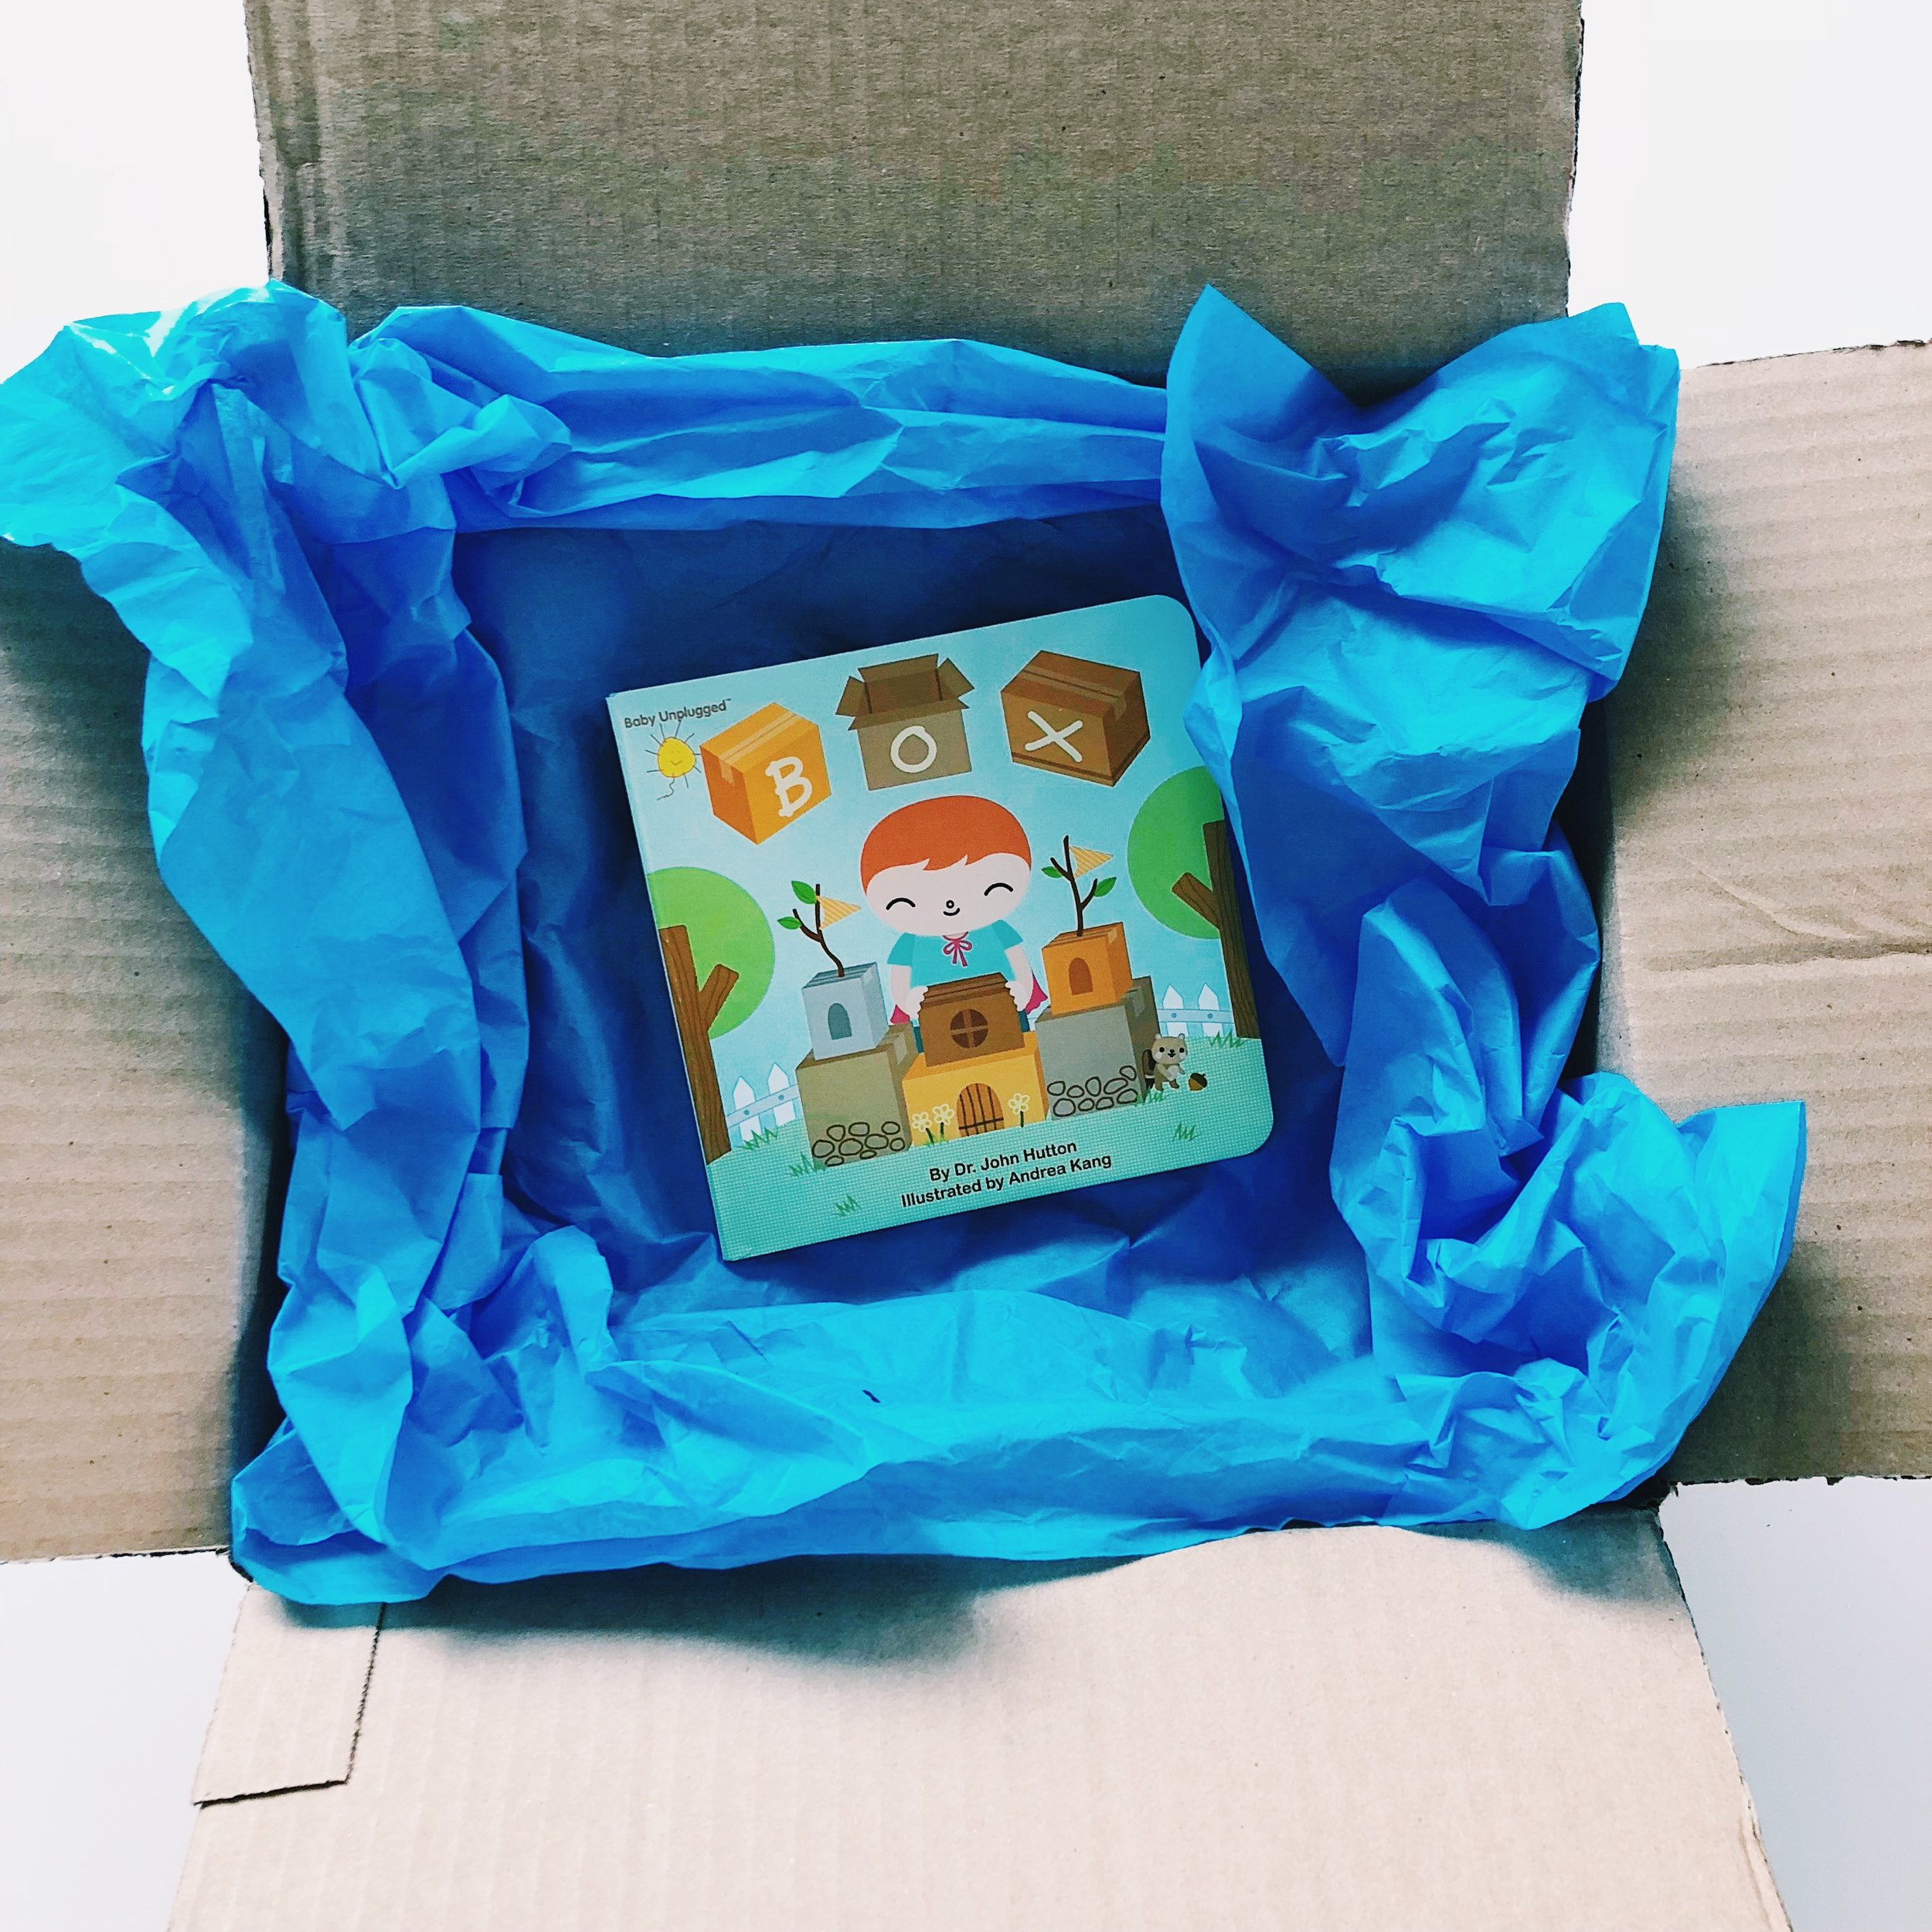 """Gifts are nice—shoes, toys, and dolls. Boxes are the best of all!"" -   Box  , written by Dr. John Hutton and illustrated by Andrea Kang"